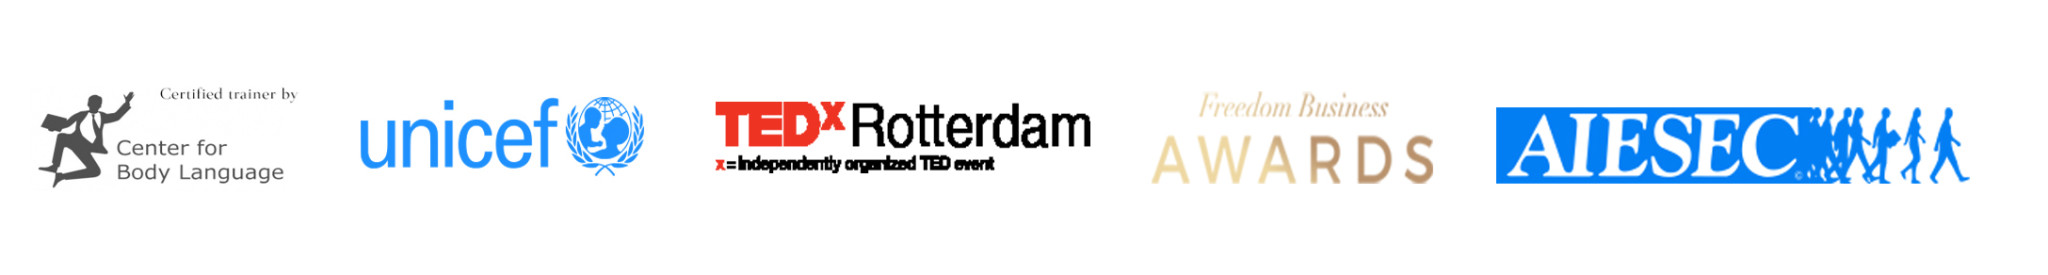 Why Not 3 has been featued in AISEC, Freedom Business Awards, TEDx Rotterdam, and Unicef